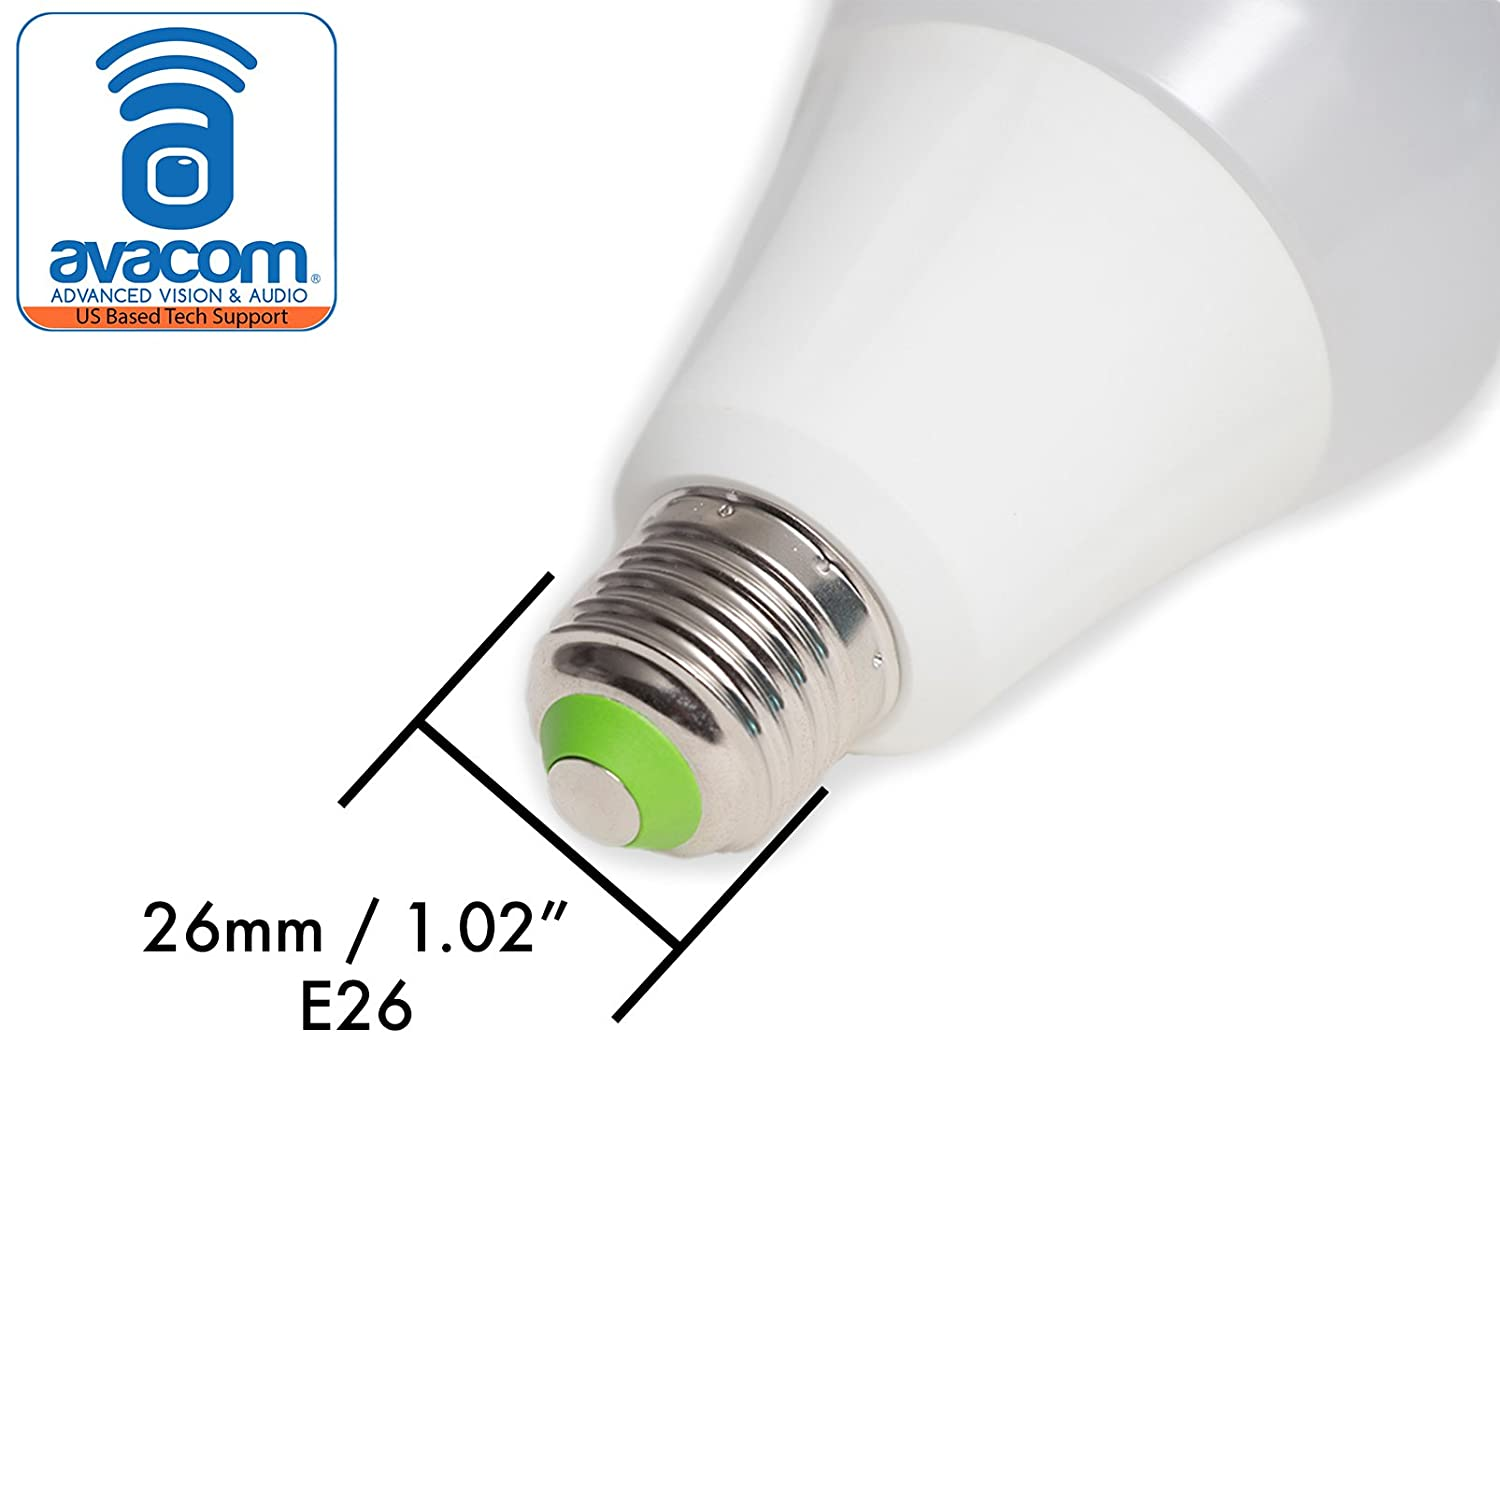 2700-6500K AVACOM iHomma Smart Dimmable Multicolor LED Light Bulb E26 Socket 900 Lumens Remote Phone App WiFi Connection